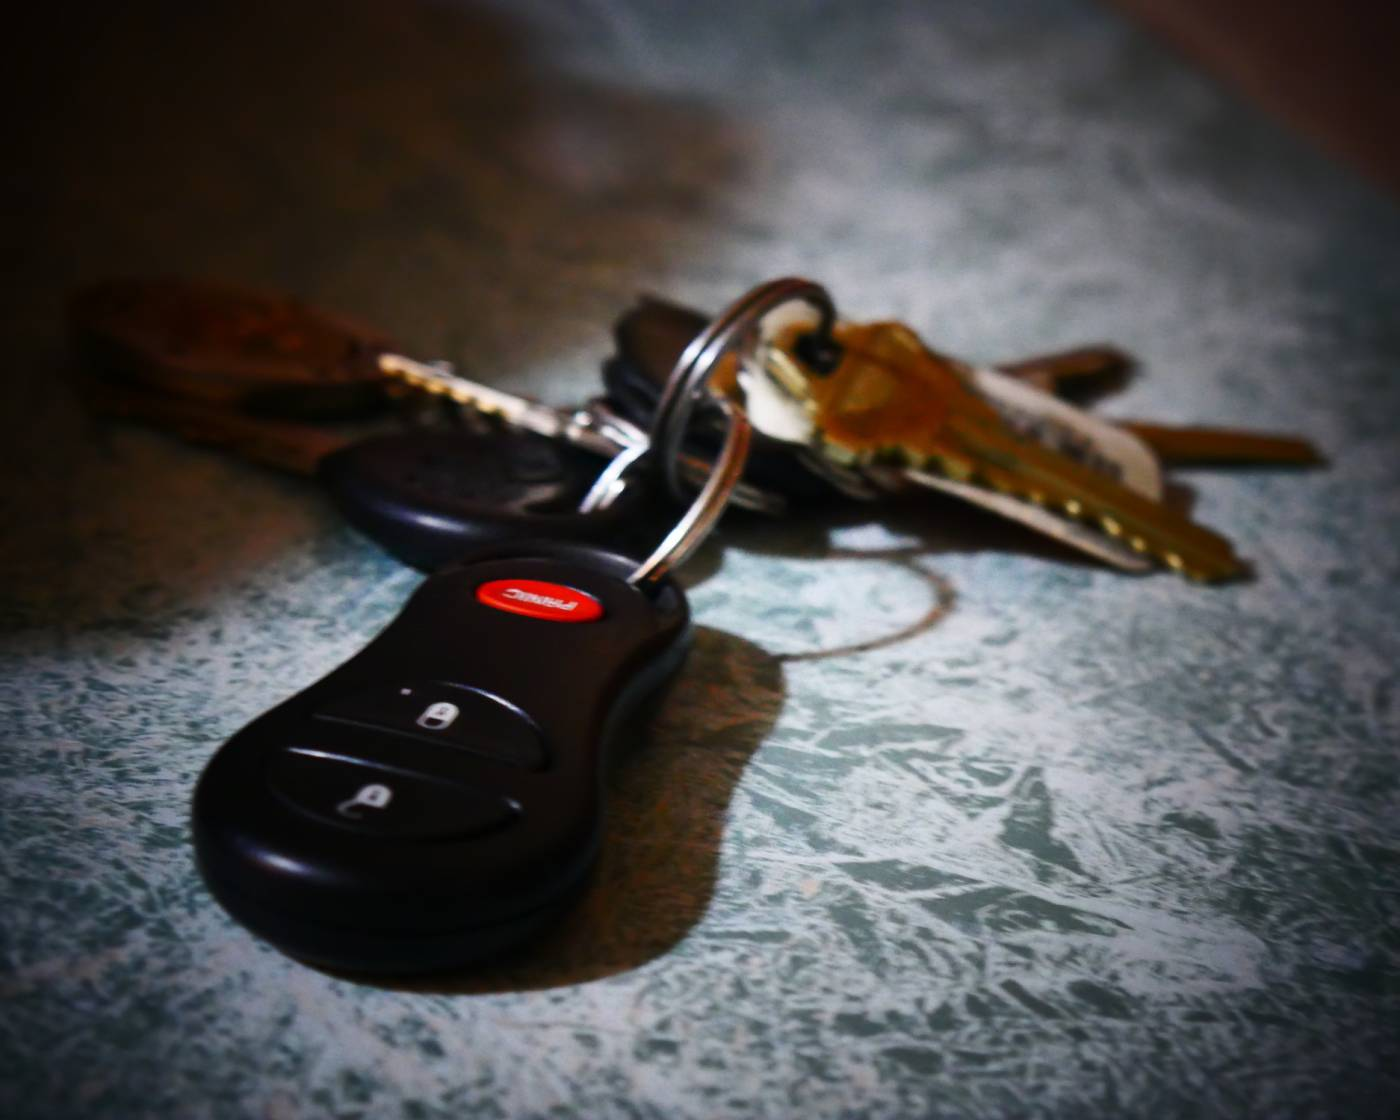 Car keys on a table